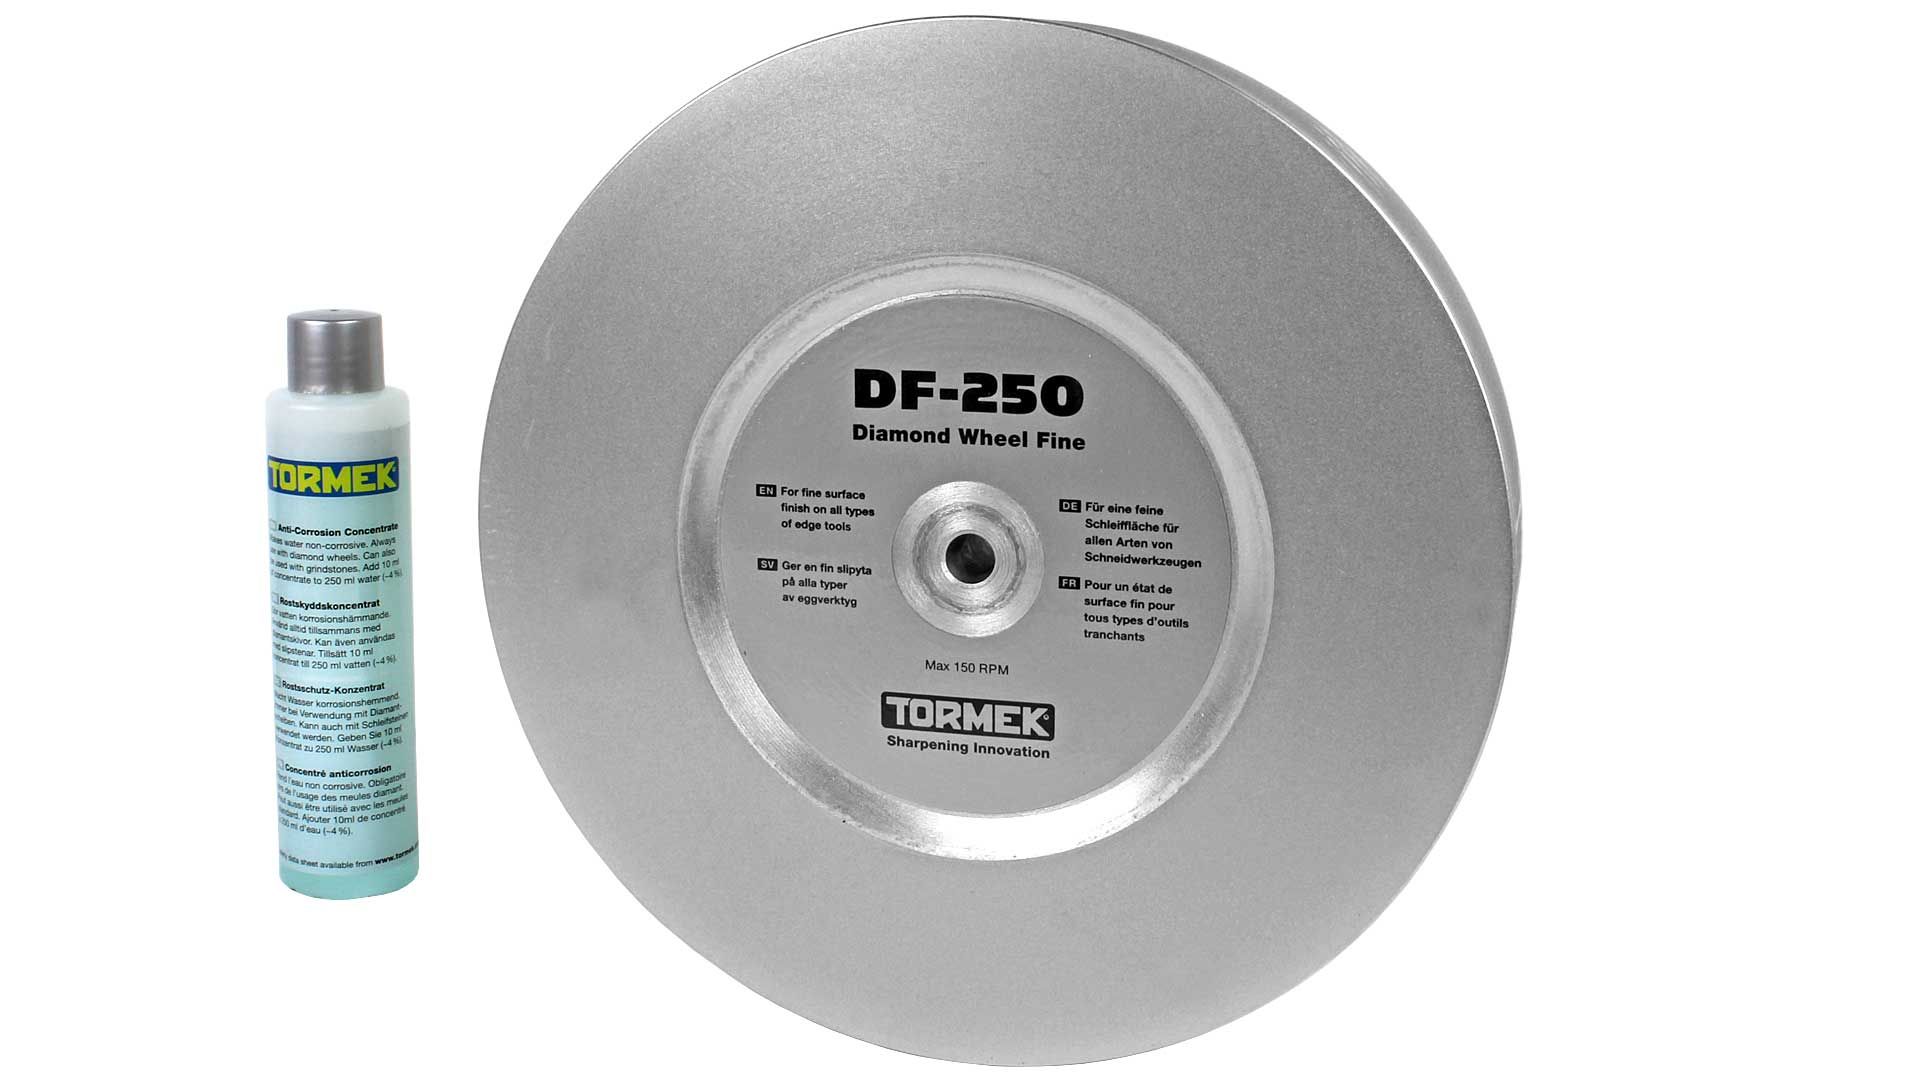 DC-250 Tormek 600 grit grade diamond wheel for Tormek T8